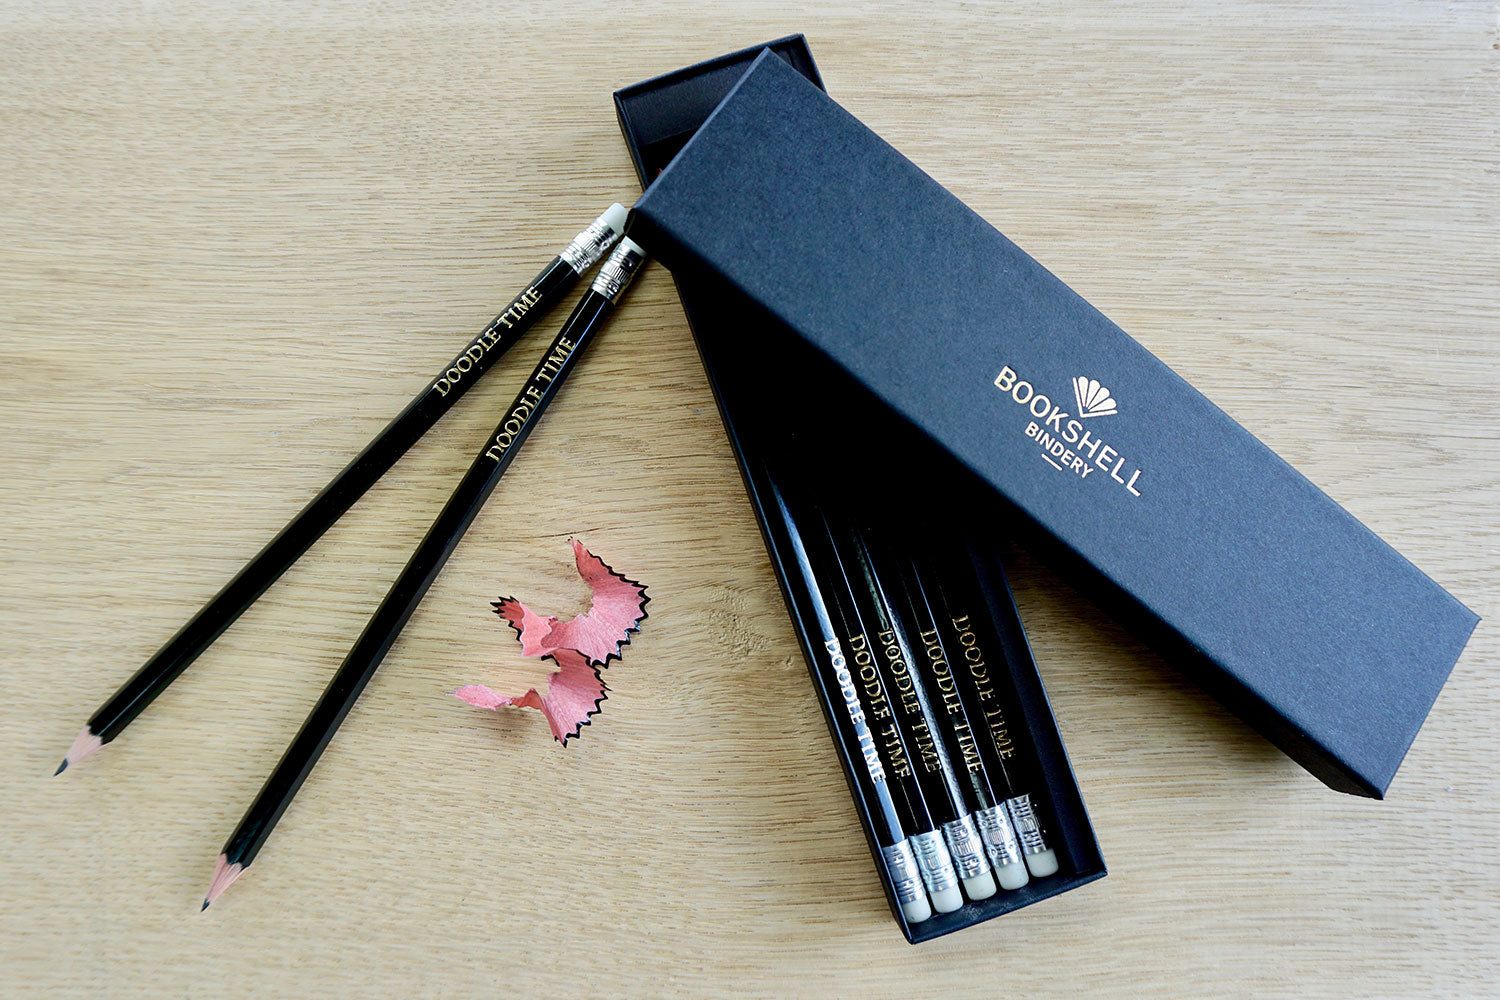 Funny pencils from Bookshell ready to gift in beautiful packaging